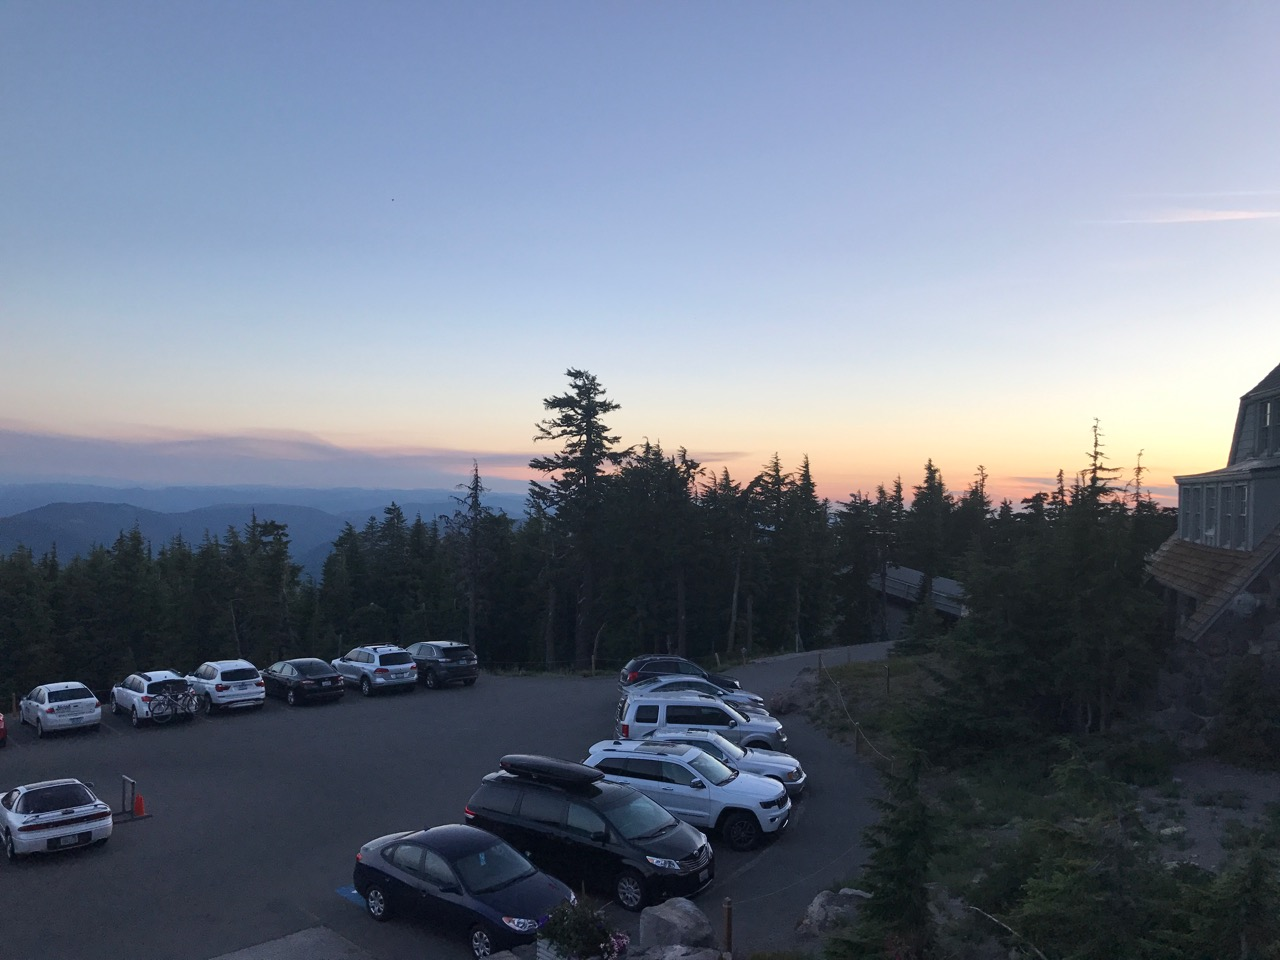 View from room at Timberline Lodge